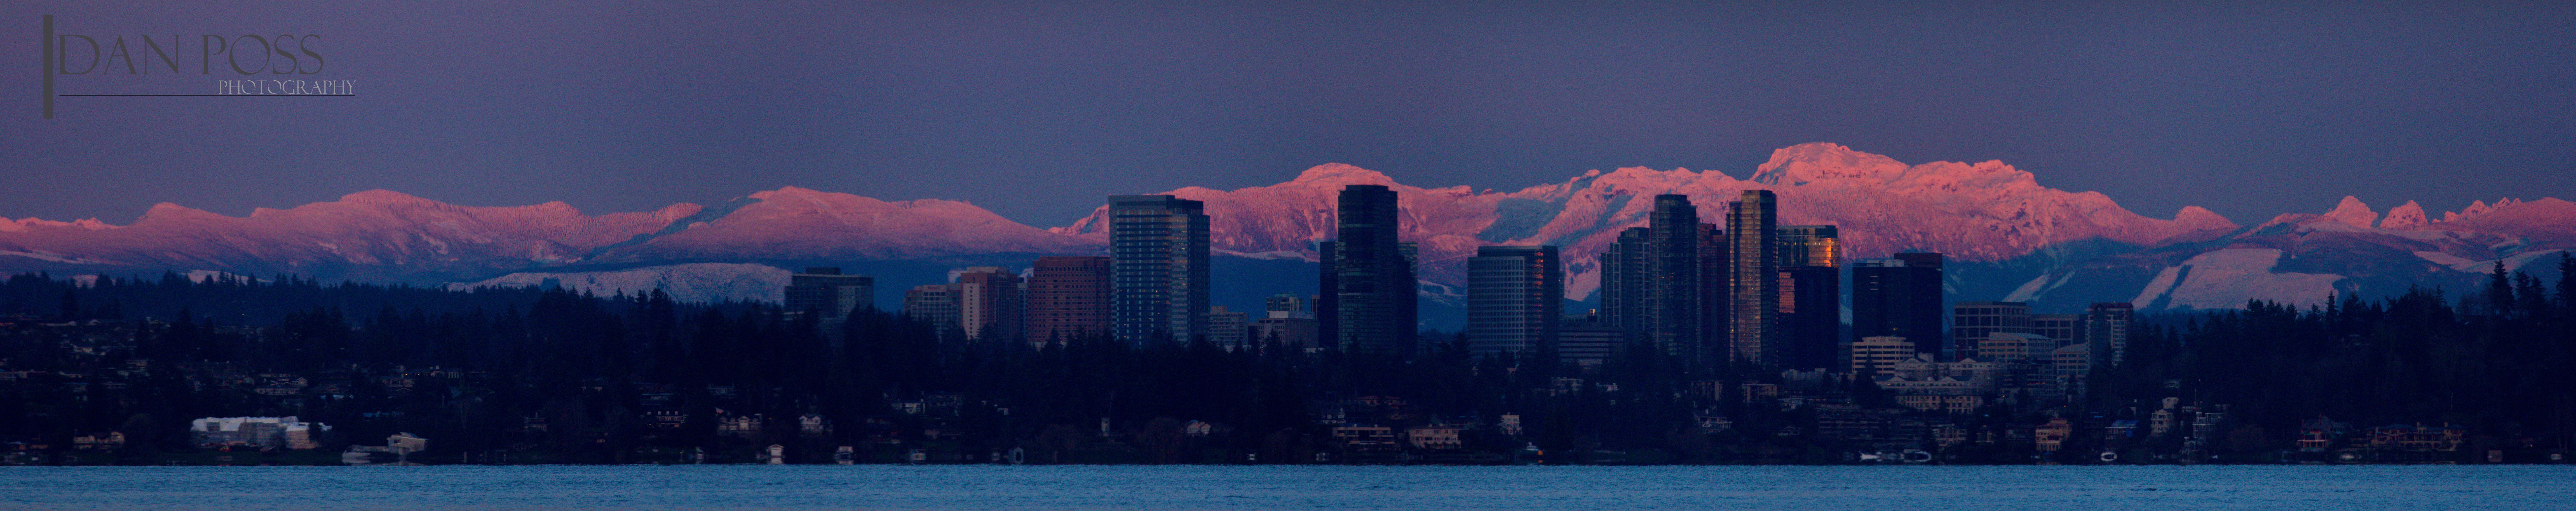 Bellevue Winter Sunset Pano